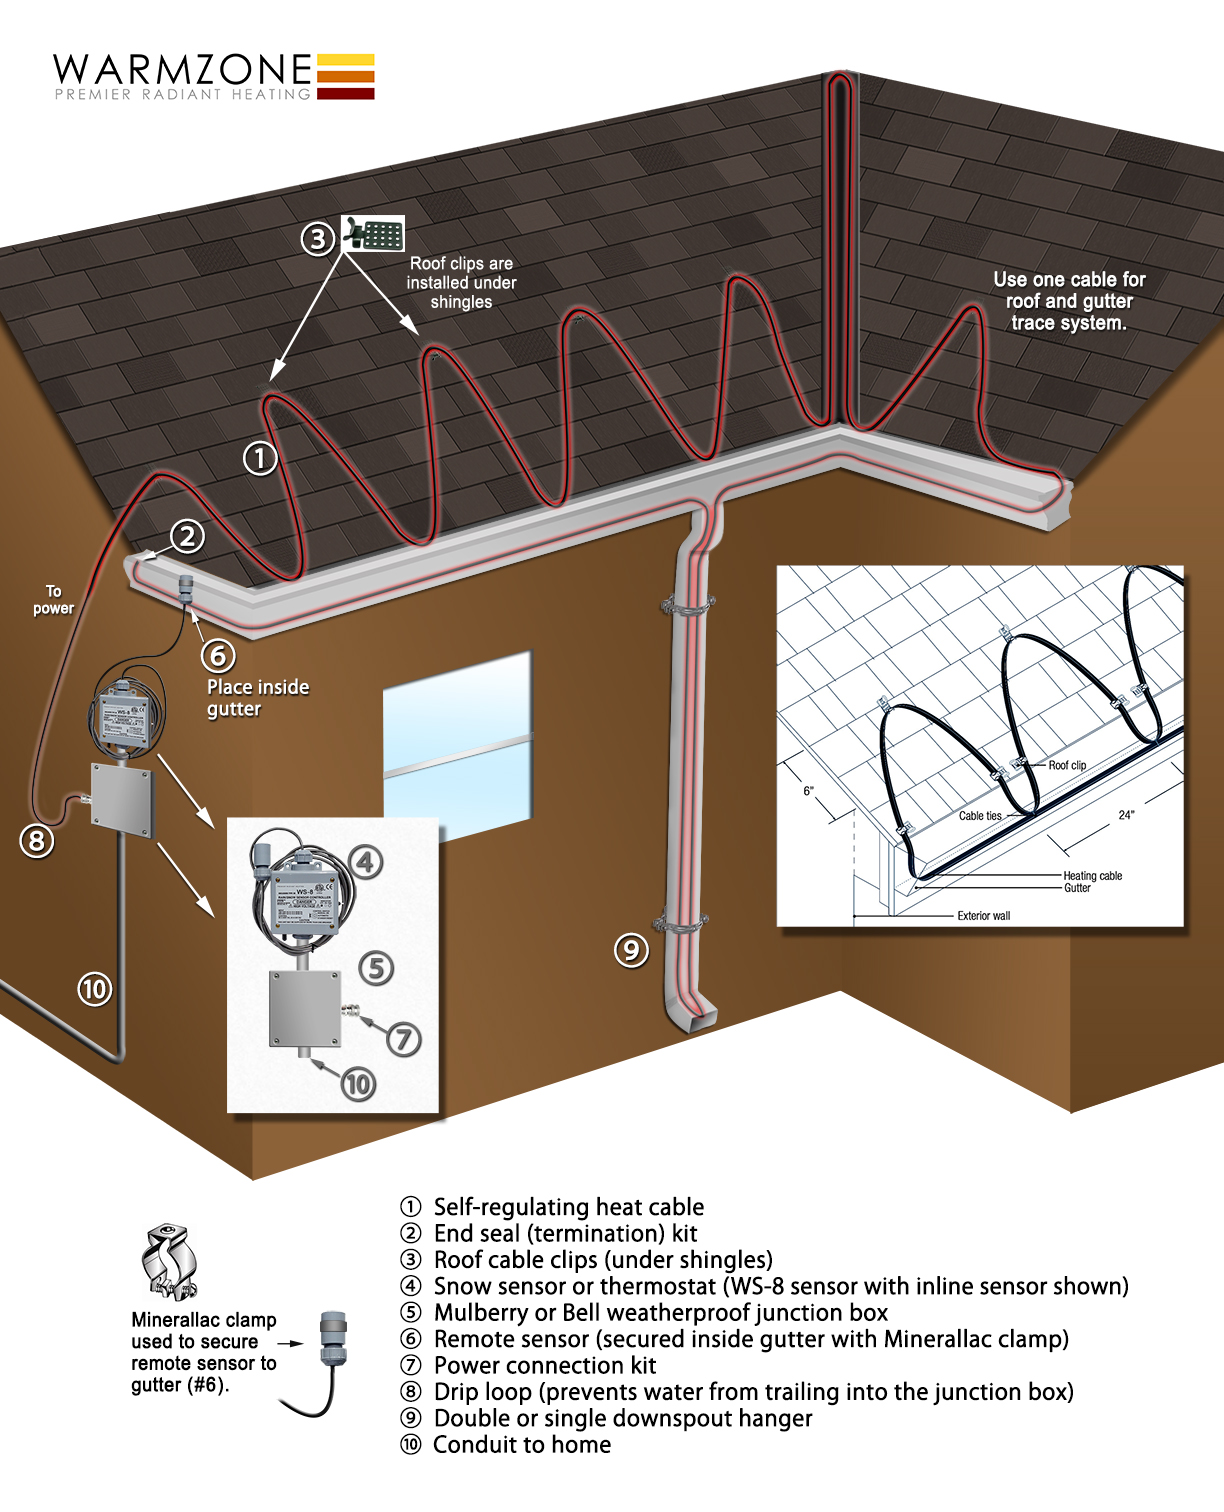 Overview of a roof heat trace system installed along roof edges, gutters and downspouts.